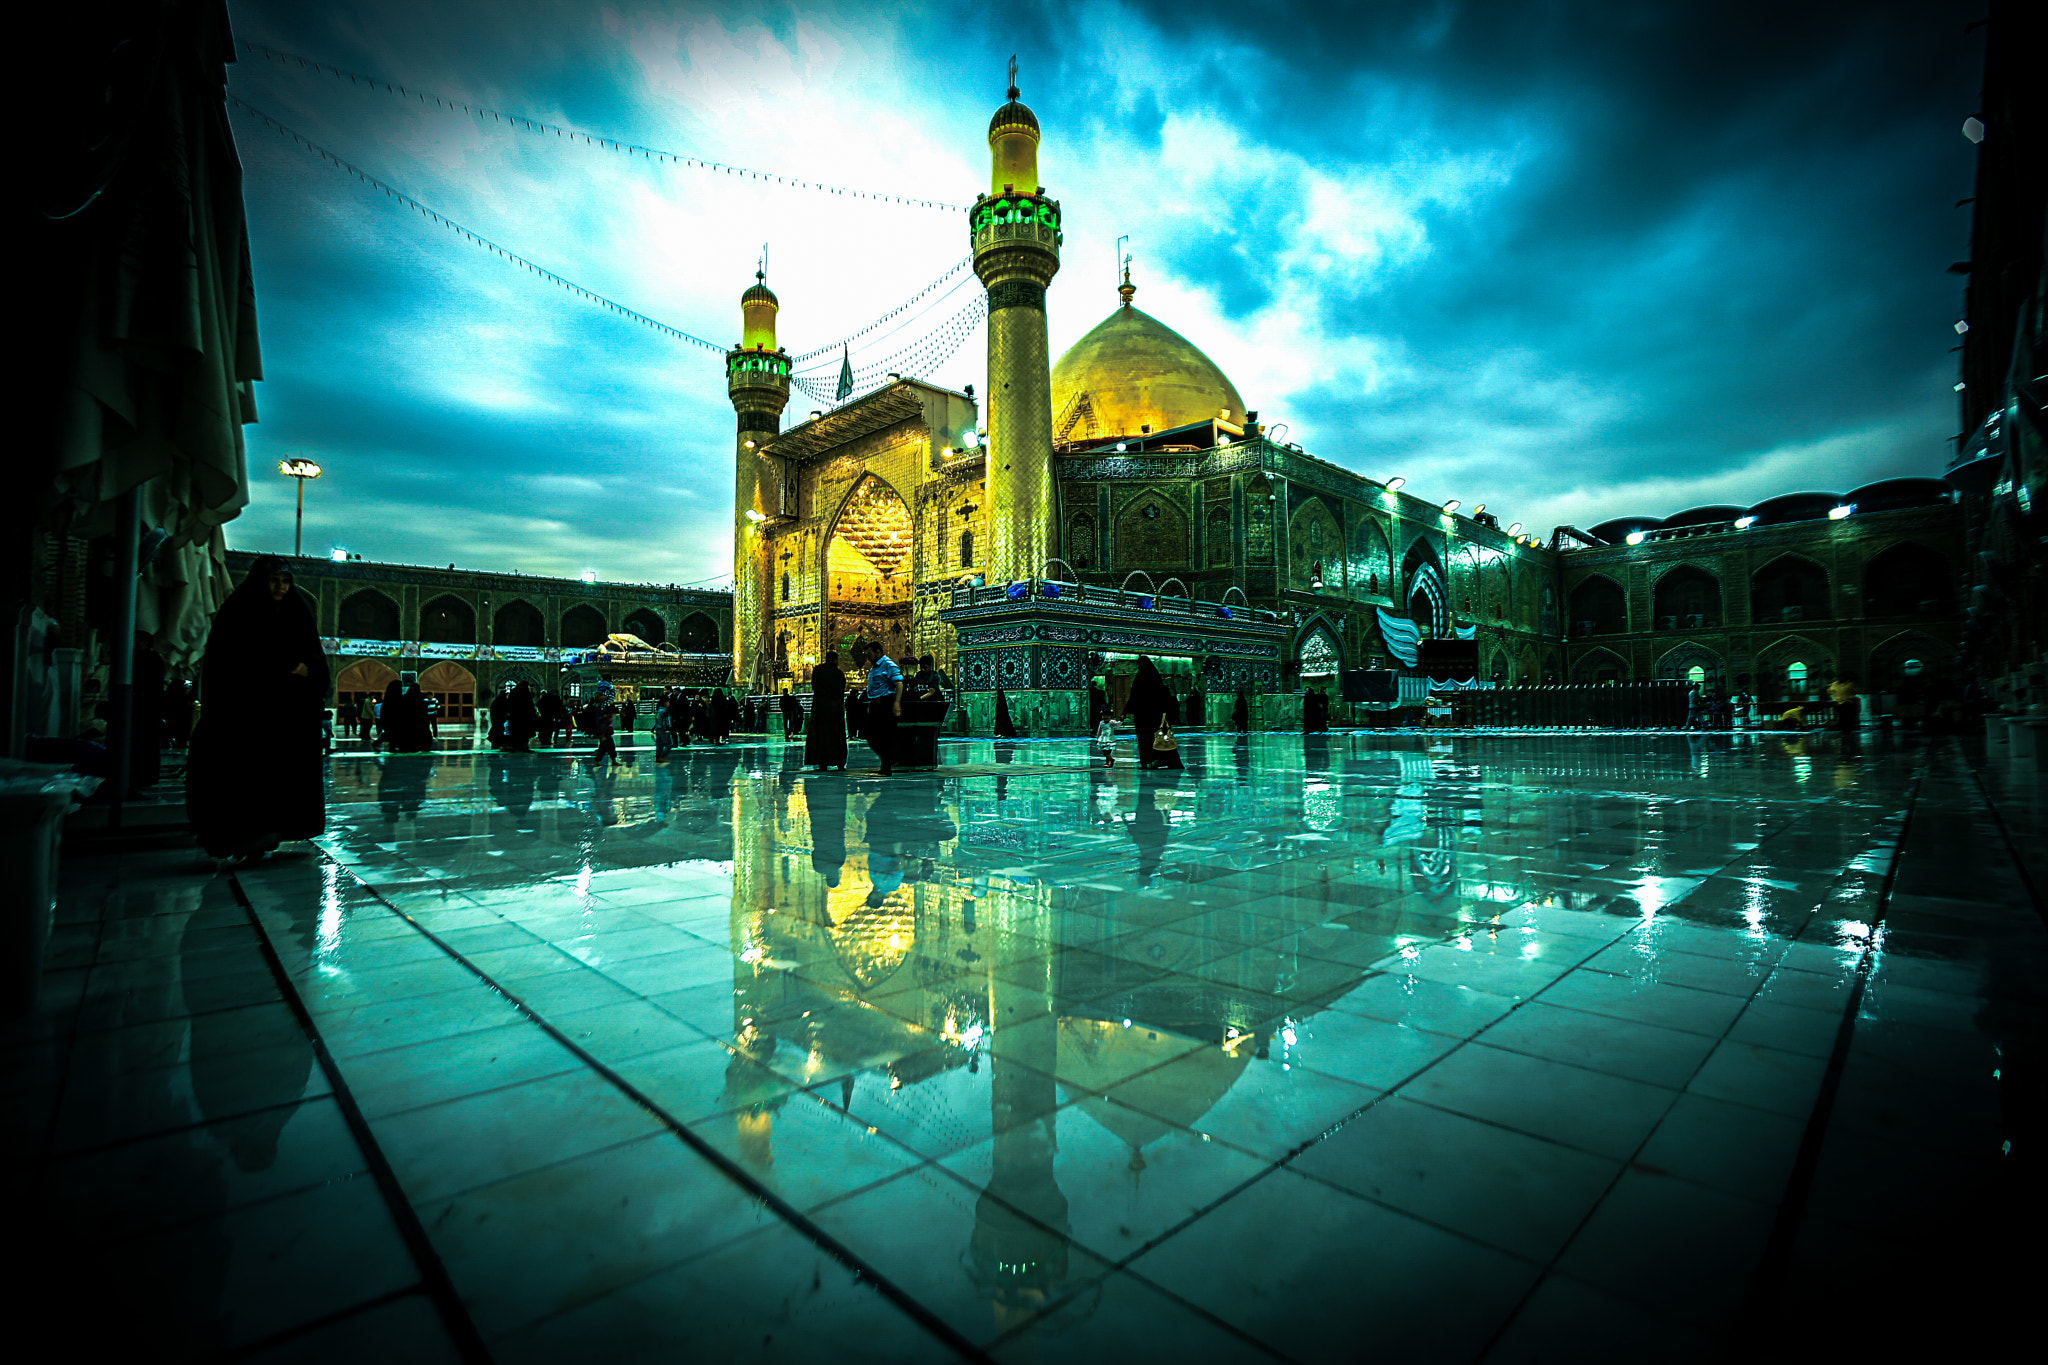 Maula Ali Shrine Wallpaper: Imam Ali Holy Shrine By Jwad. Al-Yasriy / 500px